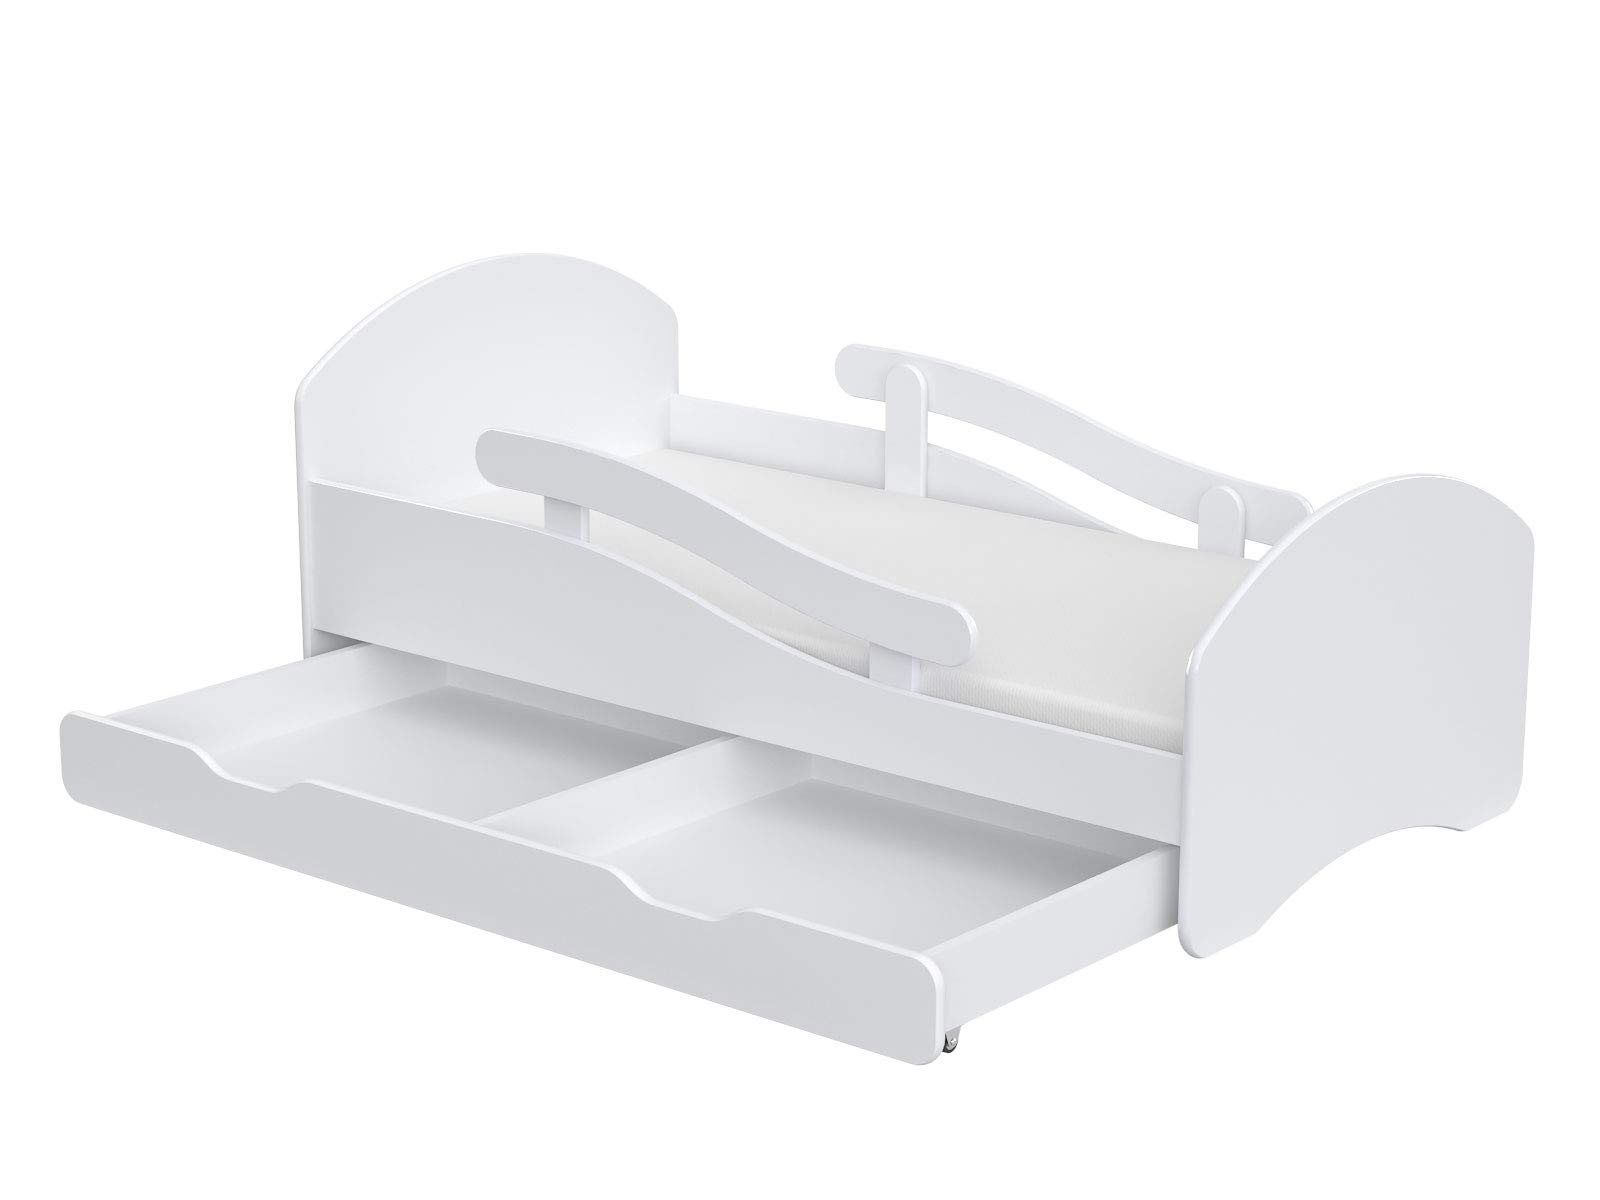 ChildrensBeds Home Single Bed Oscar For Kids Children Toddler Juniors With Drawers and 6 cm Foam Mattress Included (White - Blue, 180x80) Children's Beds Home Bed with barriers - internal dimensions 140x70, 160x80, 180x80 (External dimensions: 145x76, 165x86, 185x86) Height to top of the bed frame at lowes point is 27 cm. Bed frame with load capacity of 100 kg, Fittings + installation instructions Universal bed entrance - right or left side, front barriers can be easily removed during the day and put back at night 3